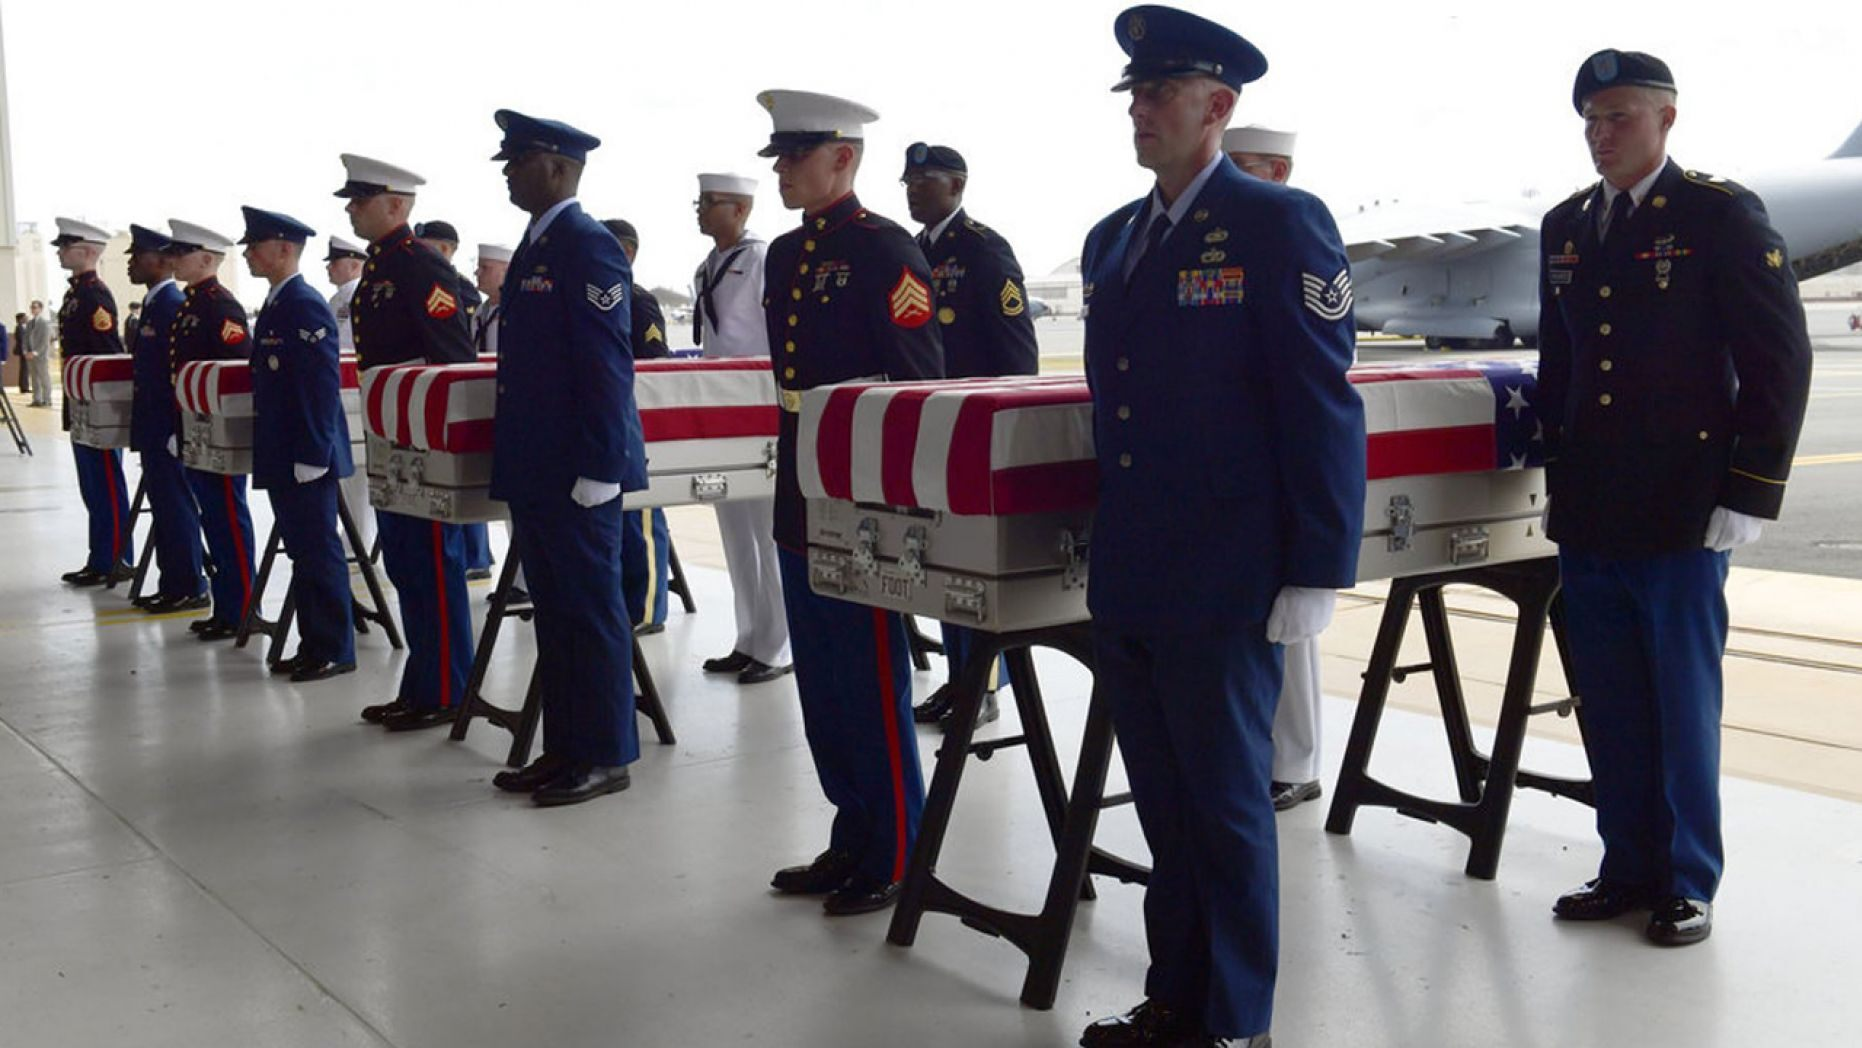 Military members stand at attention after placing transfer cases in a hanger at a ceremony marking the arrival of the remains believed to be of American service members who fell in the Korean War at Joint Base Pearl Harbor-Hickam in Hawaii, in August 2018.